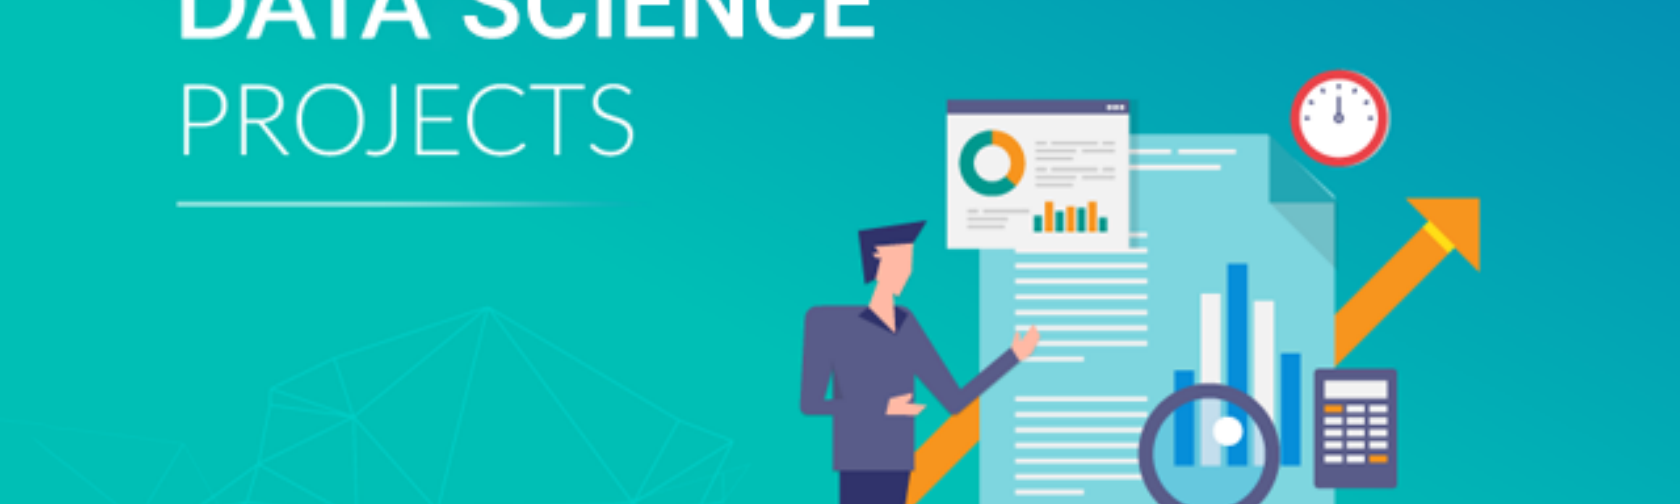 Top 5 Data Science Projects For Beginners & Experts | Edureka